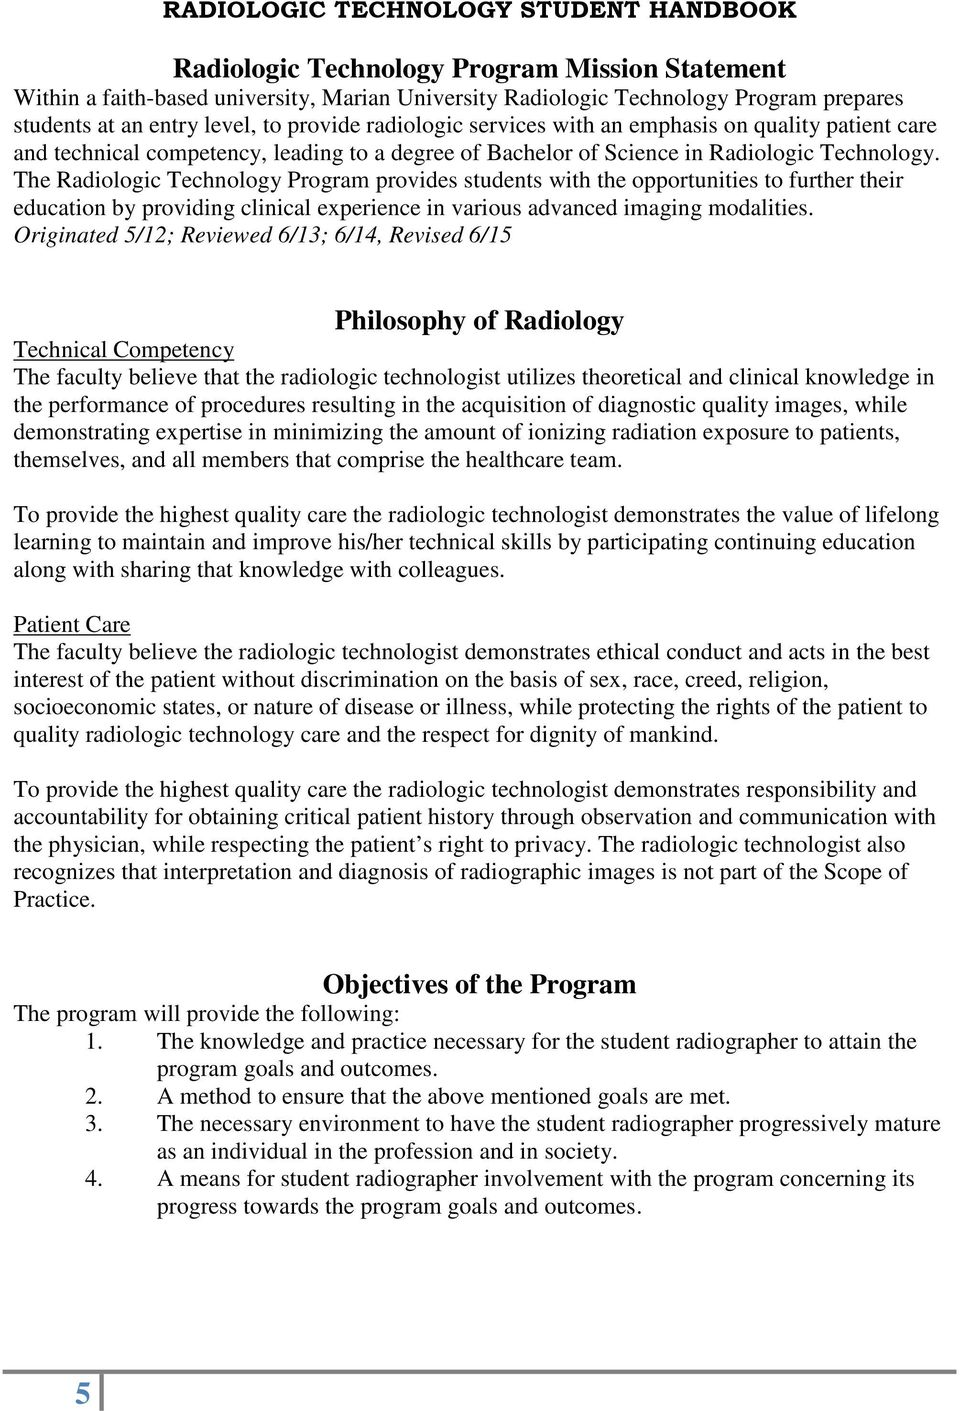 The Radiologic Technology Program provides students with the opportunities to further their education by providing clinical experience in various advanced imaging modalities.